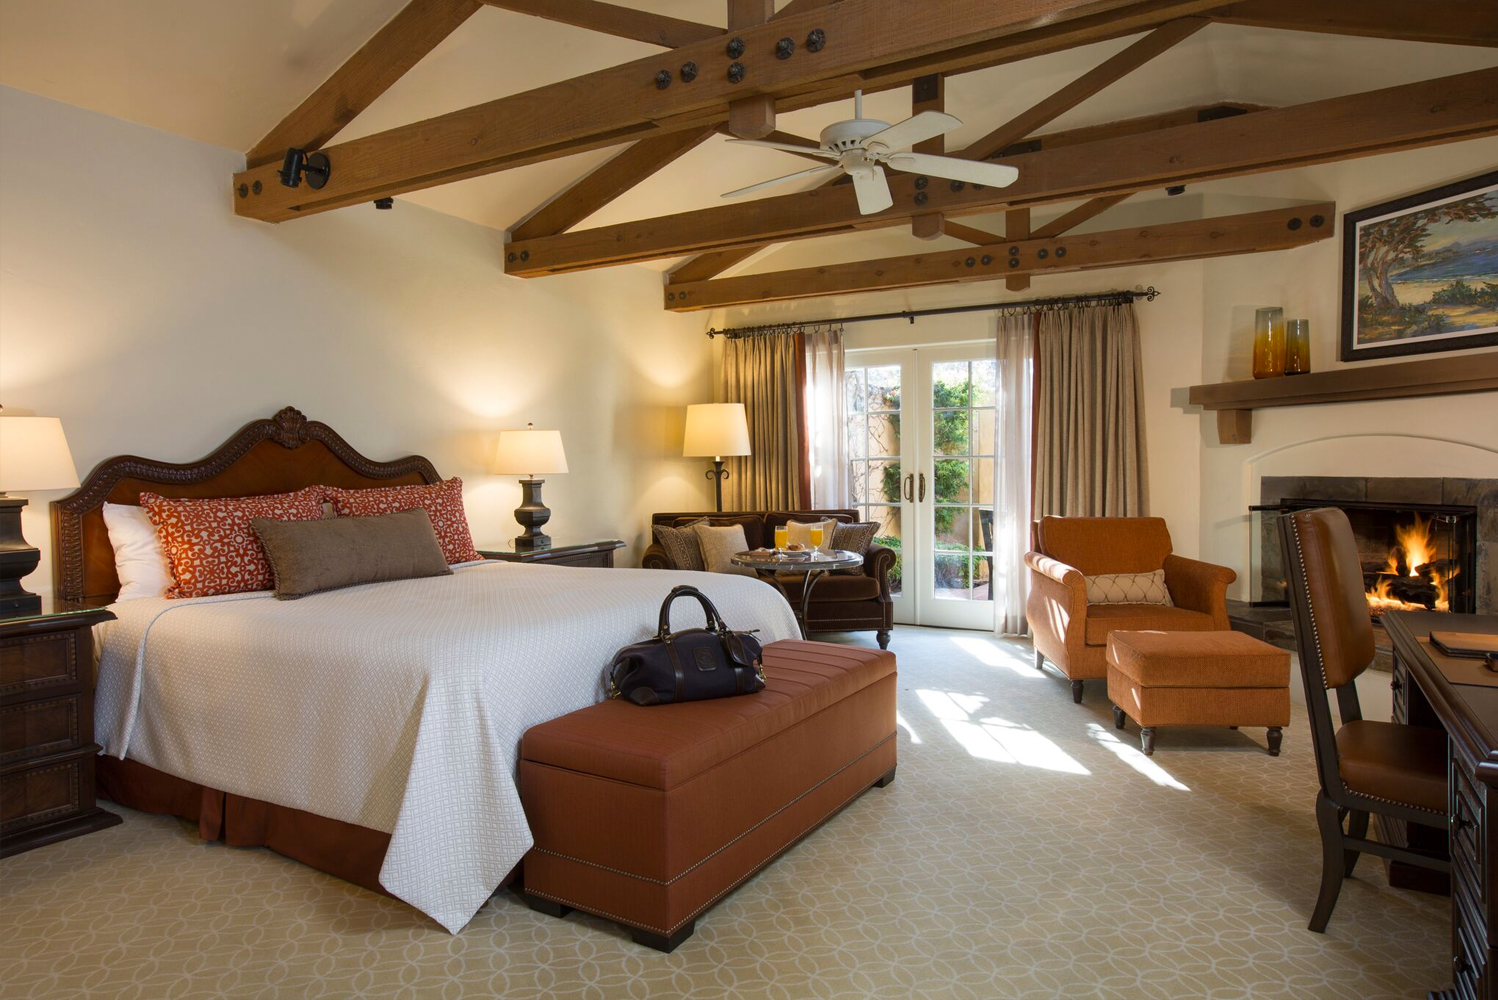 Casa Palmero completed a refresh to its 24 guest accommodations.